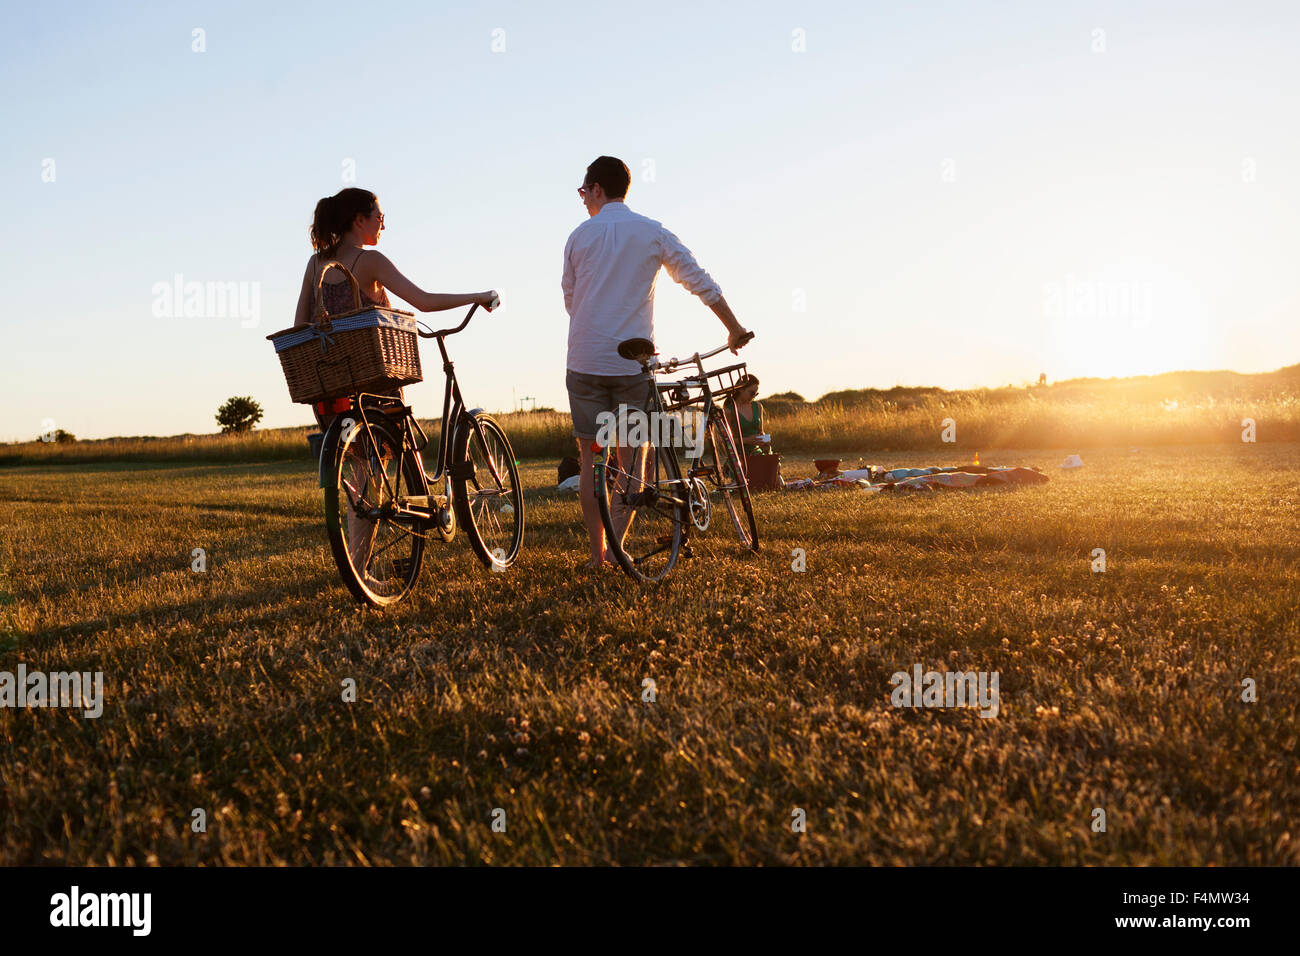 Rear view of friends walking with bicycle on field - Stock Image